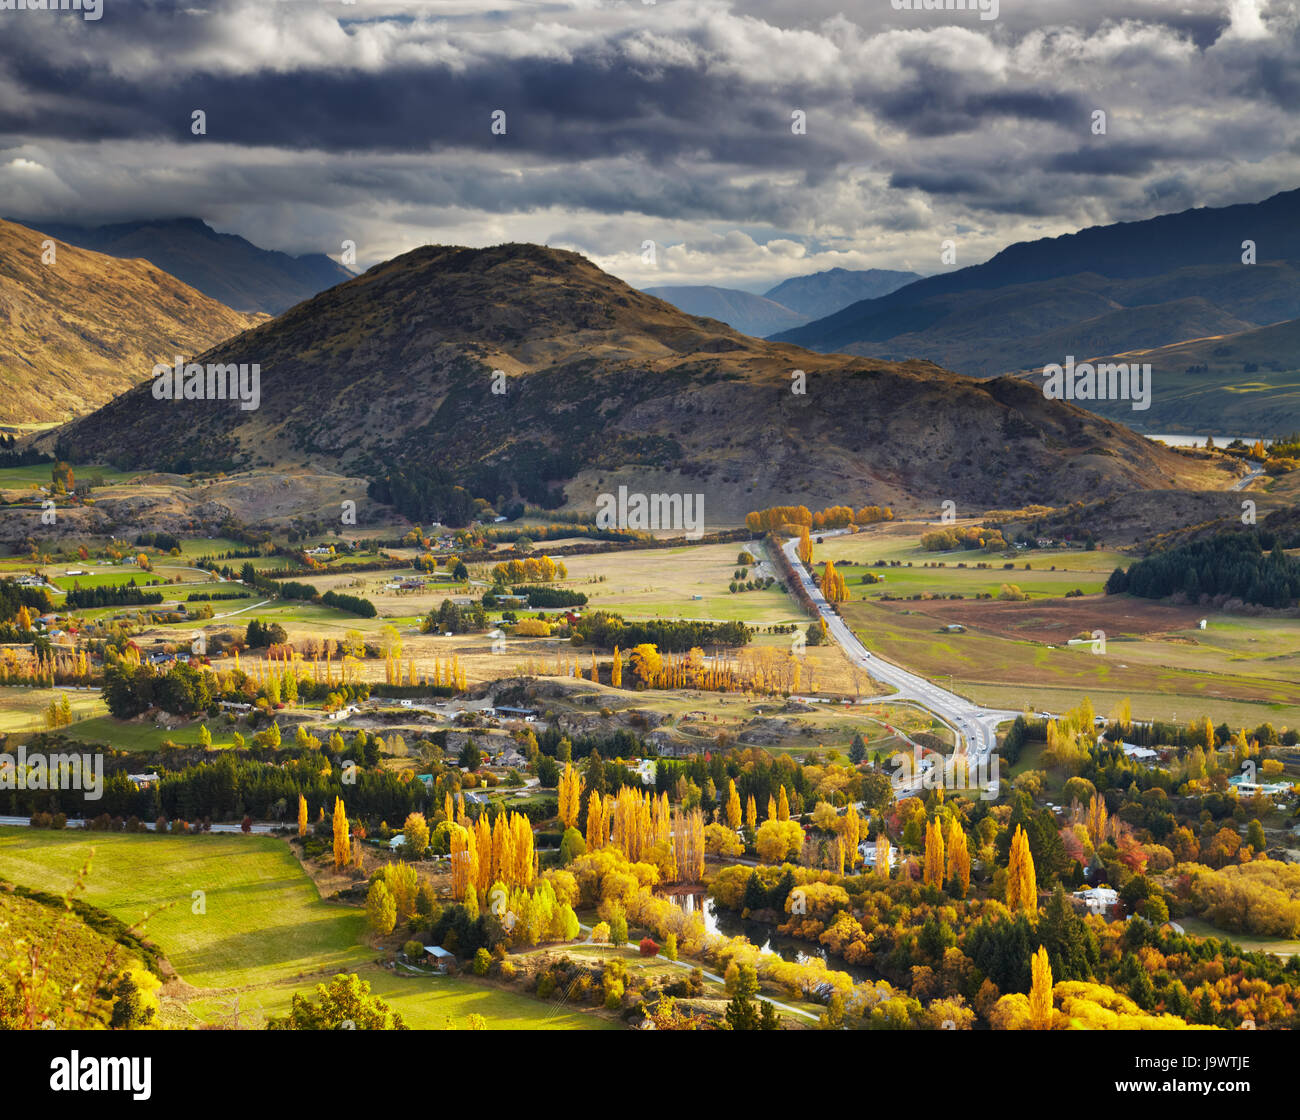 Autumn landscape, near Queenstown, New Zealand - Stock Image